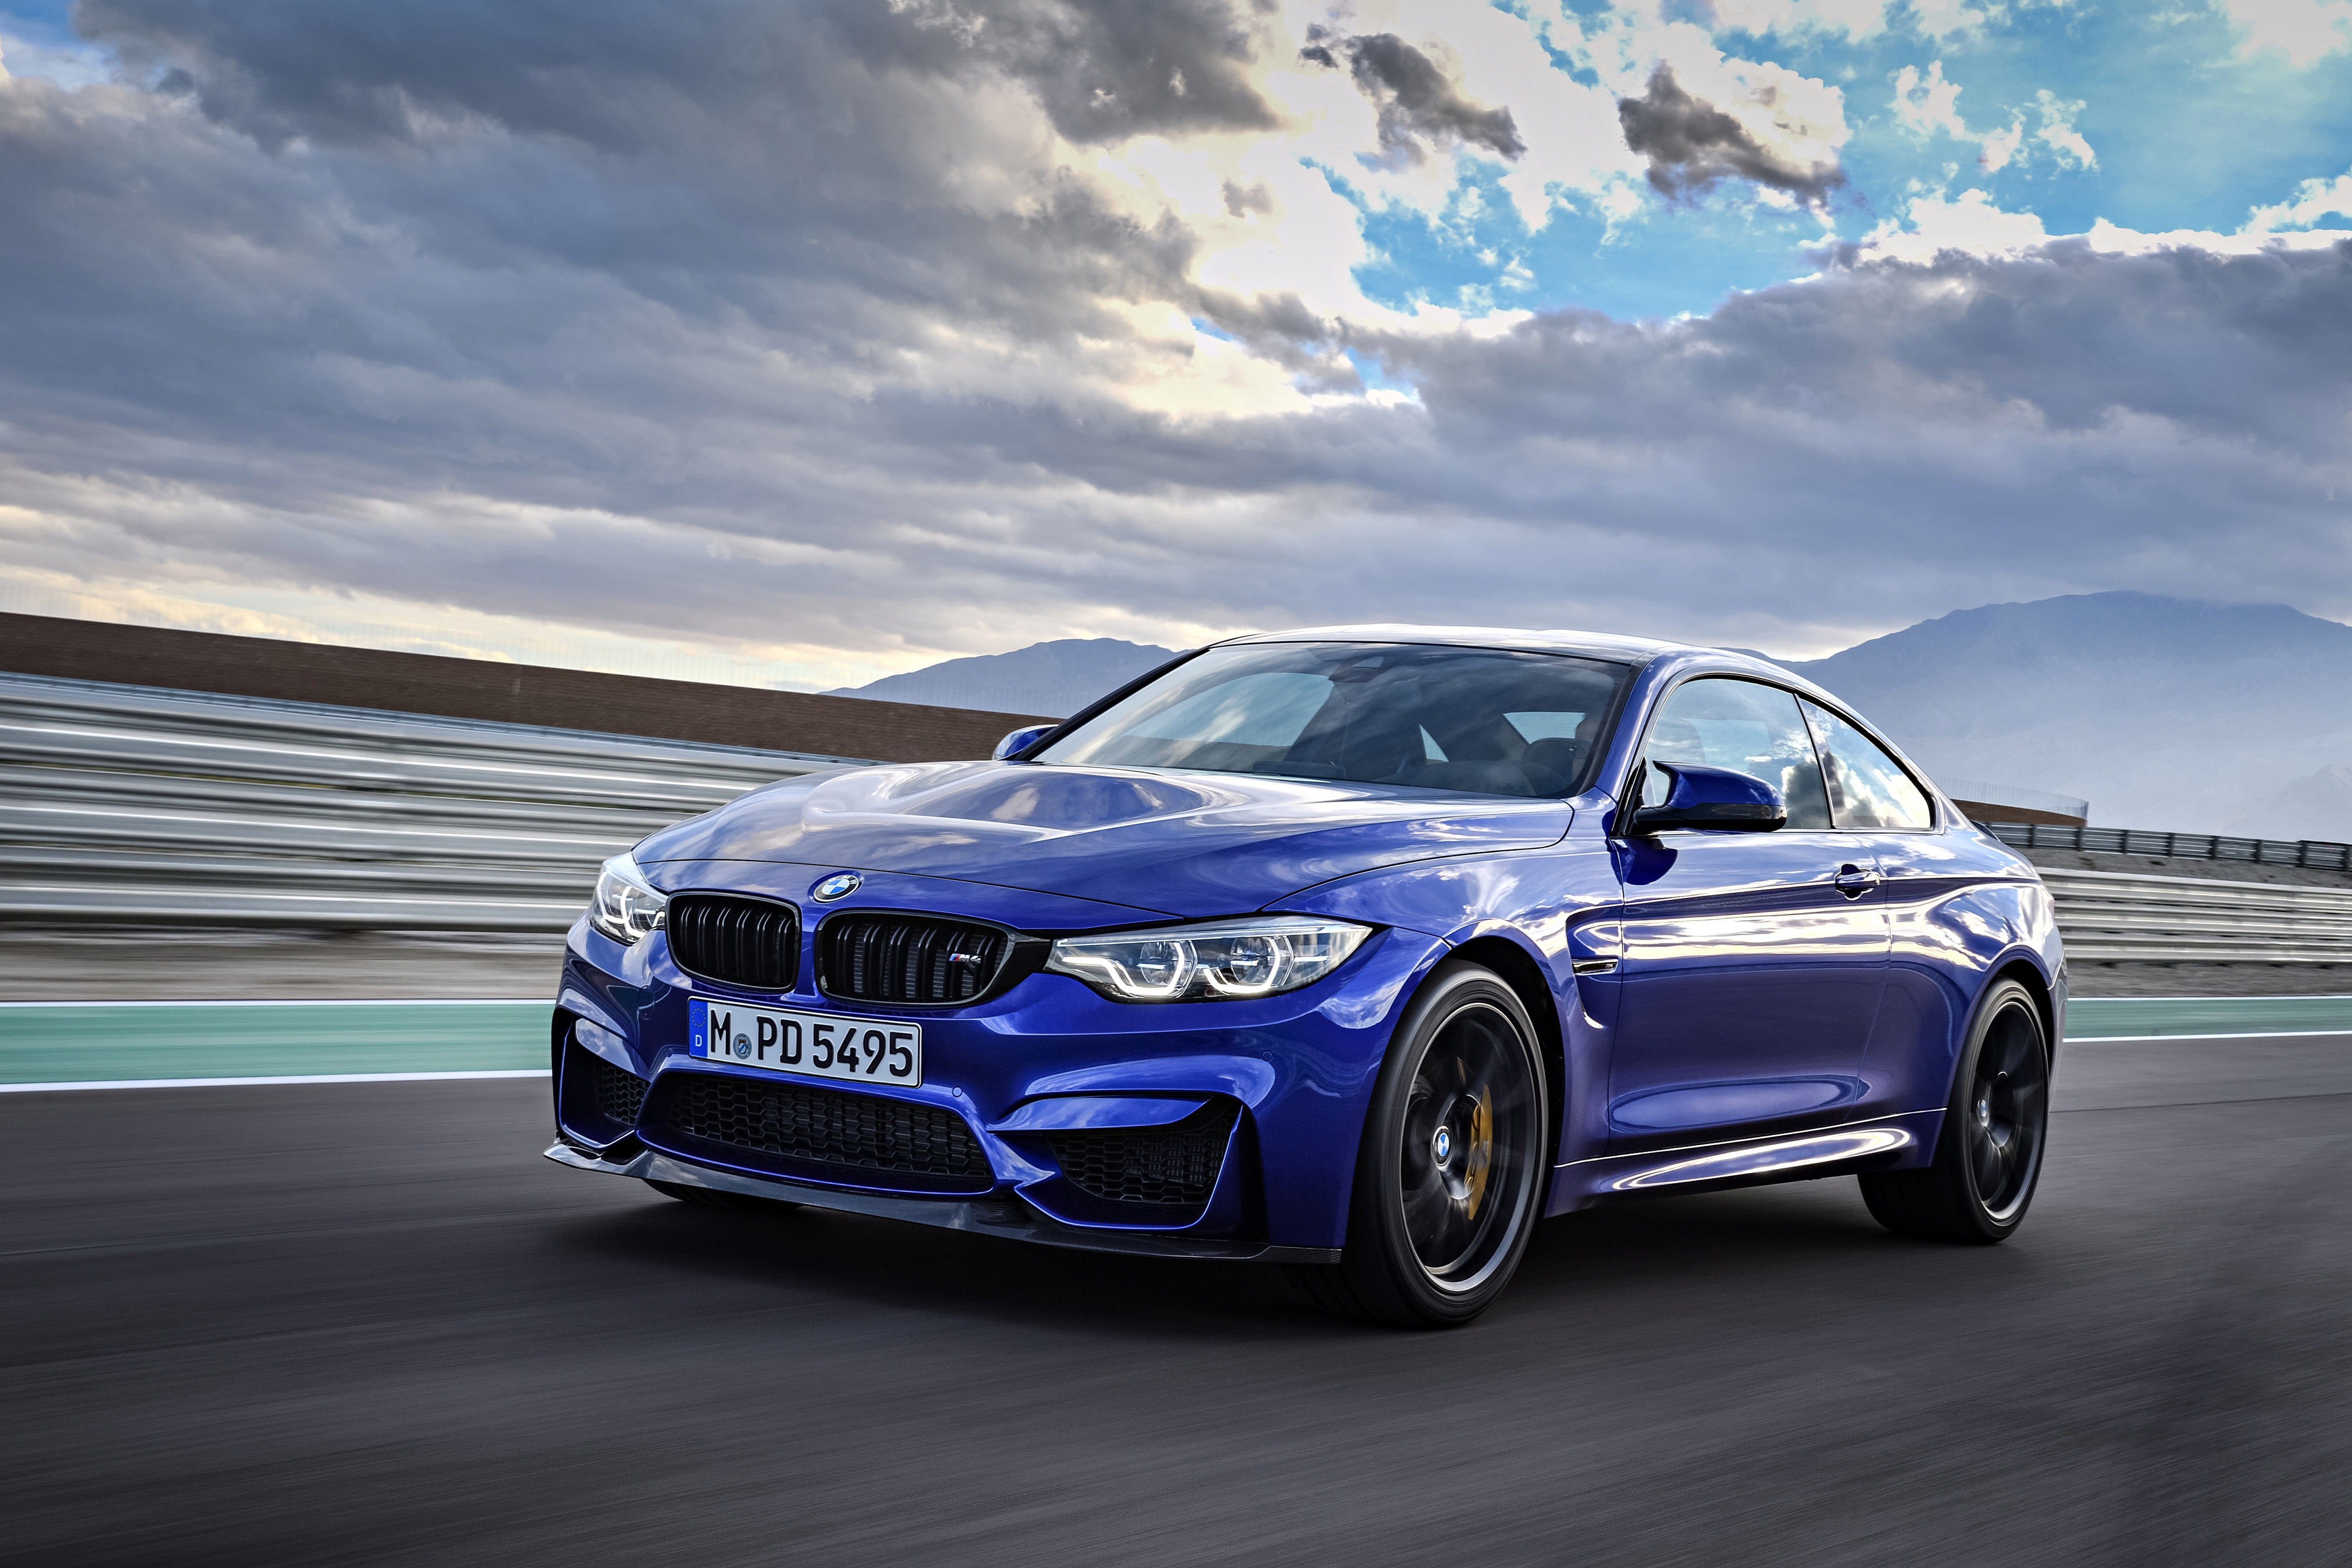 Bmw M4 Cs 2018 Hd Cars 4k Wallpapers Images Backgrounds